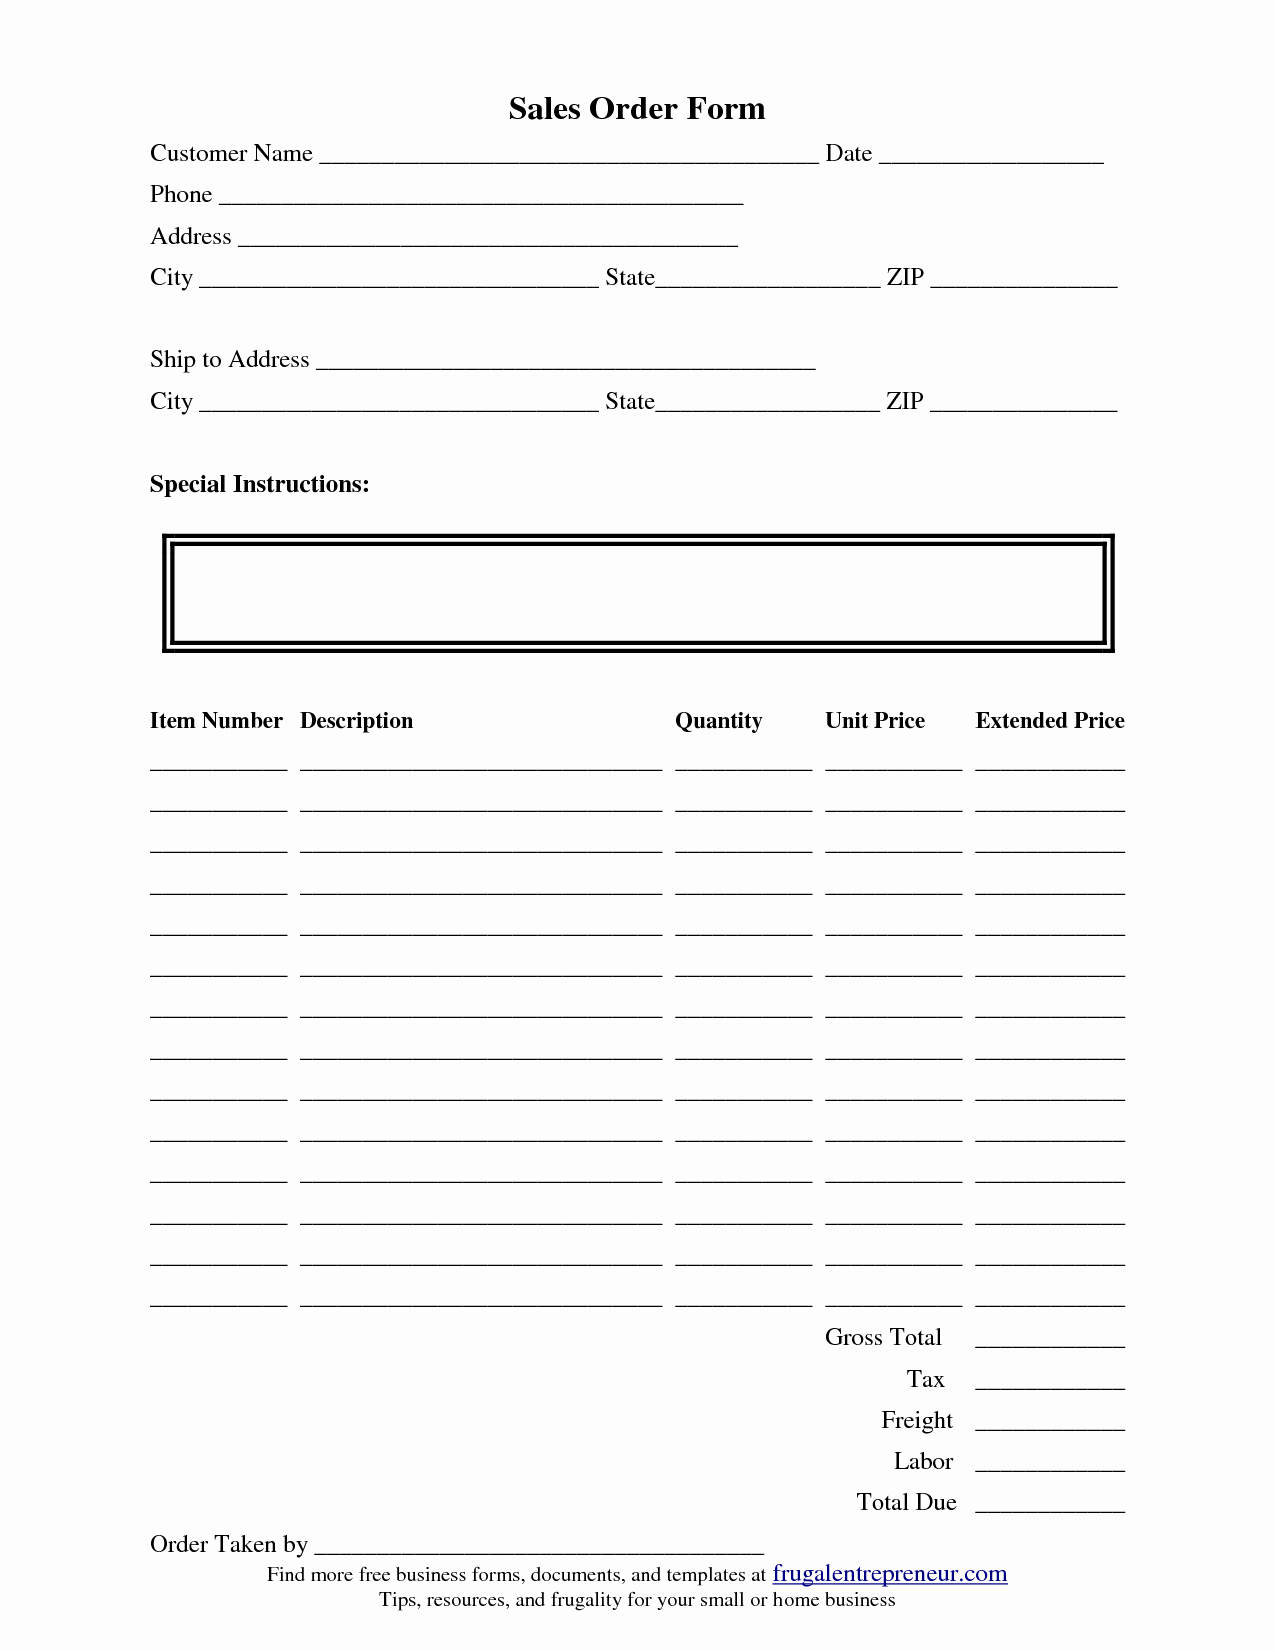 Sales order forms Templates Free Beautiful order form Template